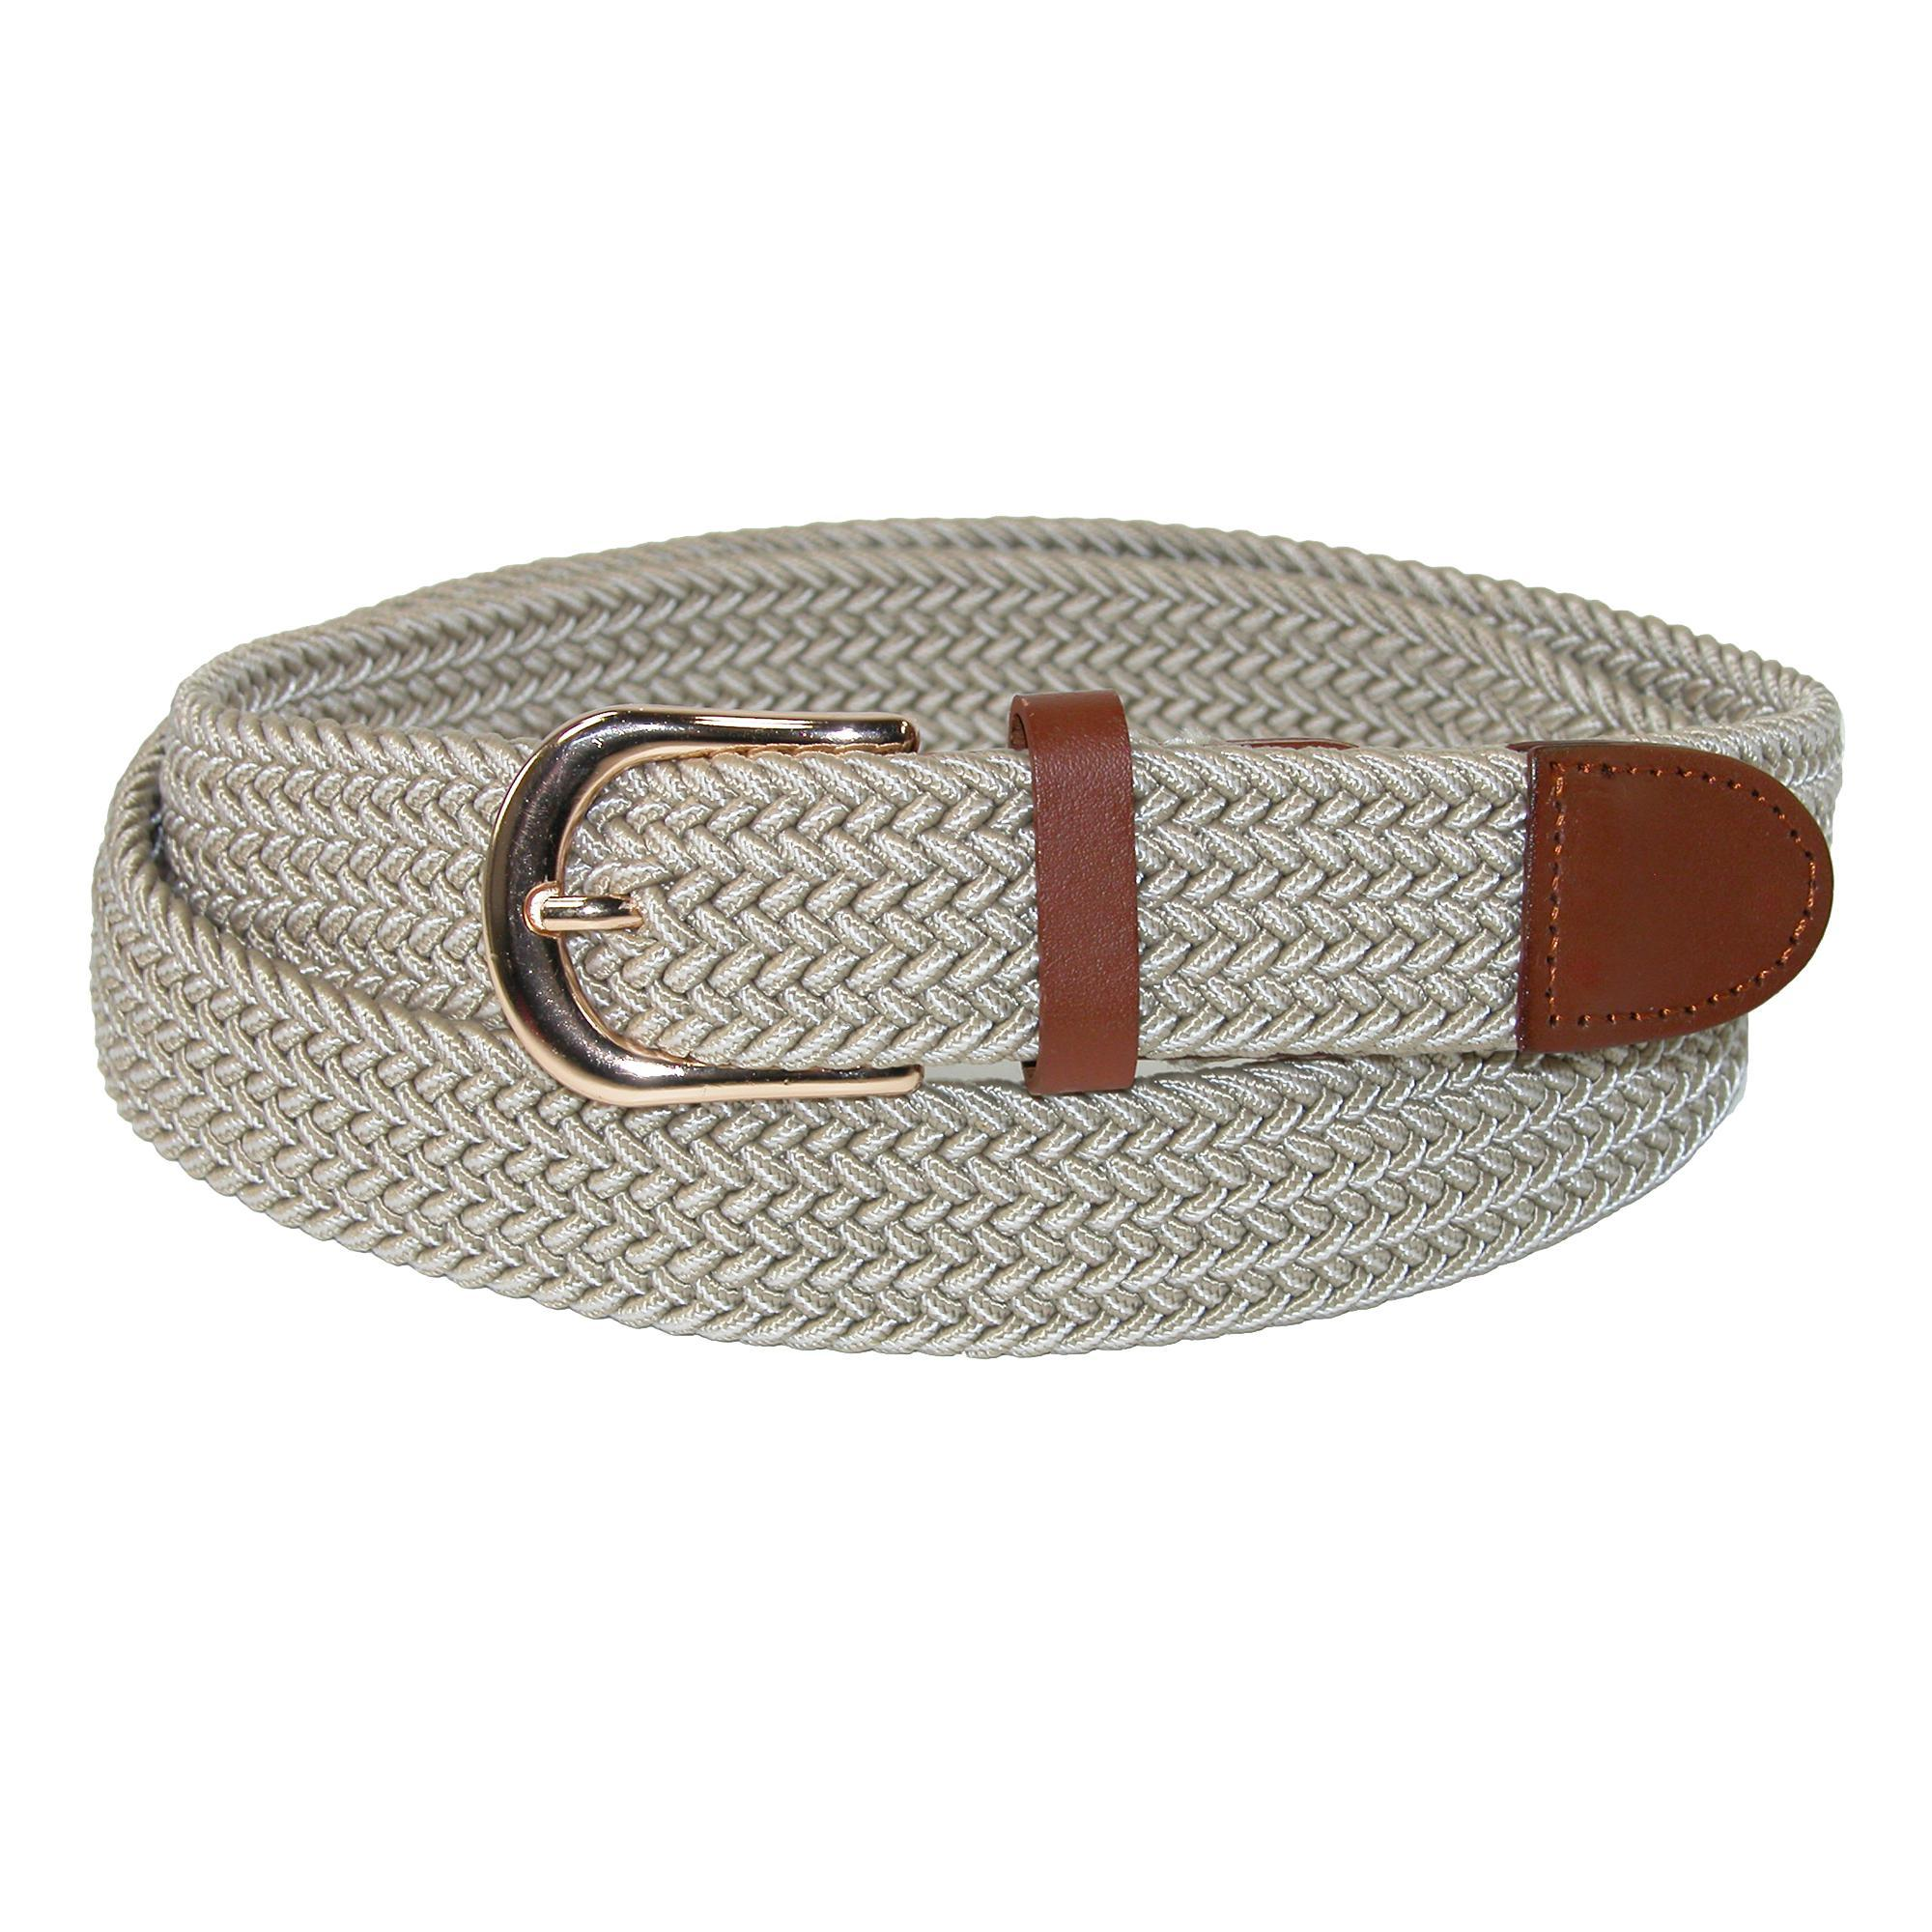 Ctm Mens Elastic Stretch Two Tone Belt With Gold Buckle